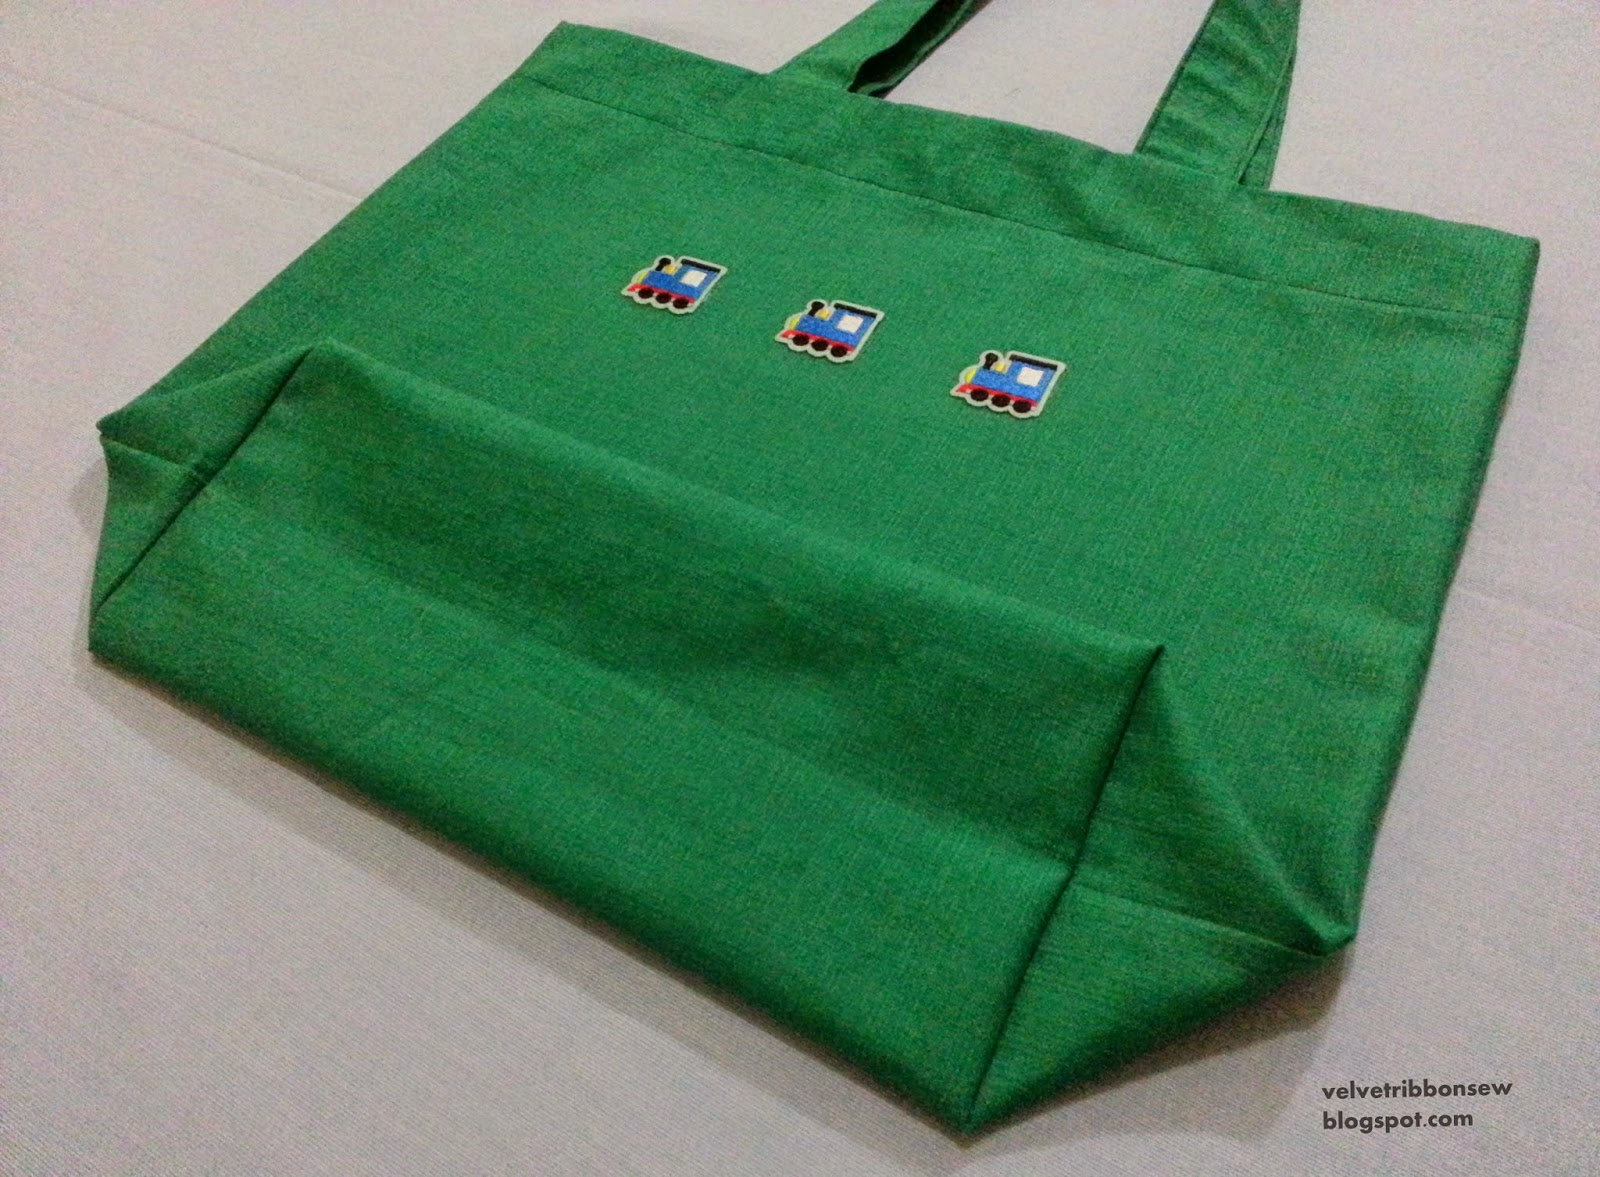 Green tote bag with trains